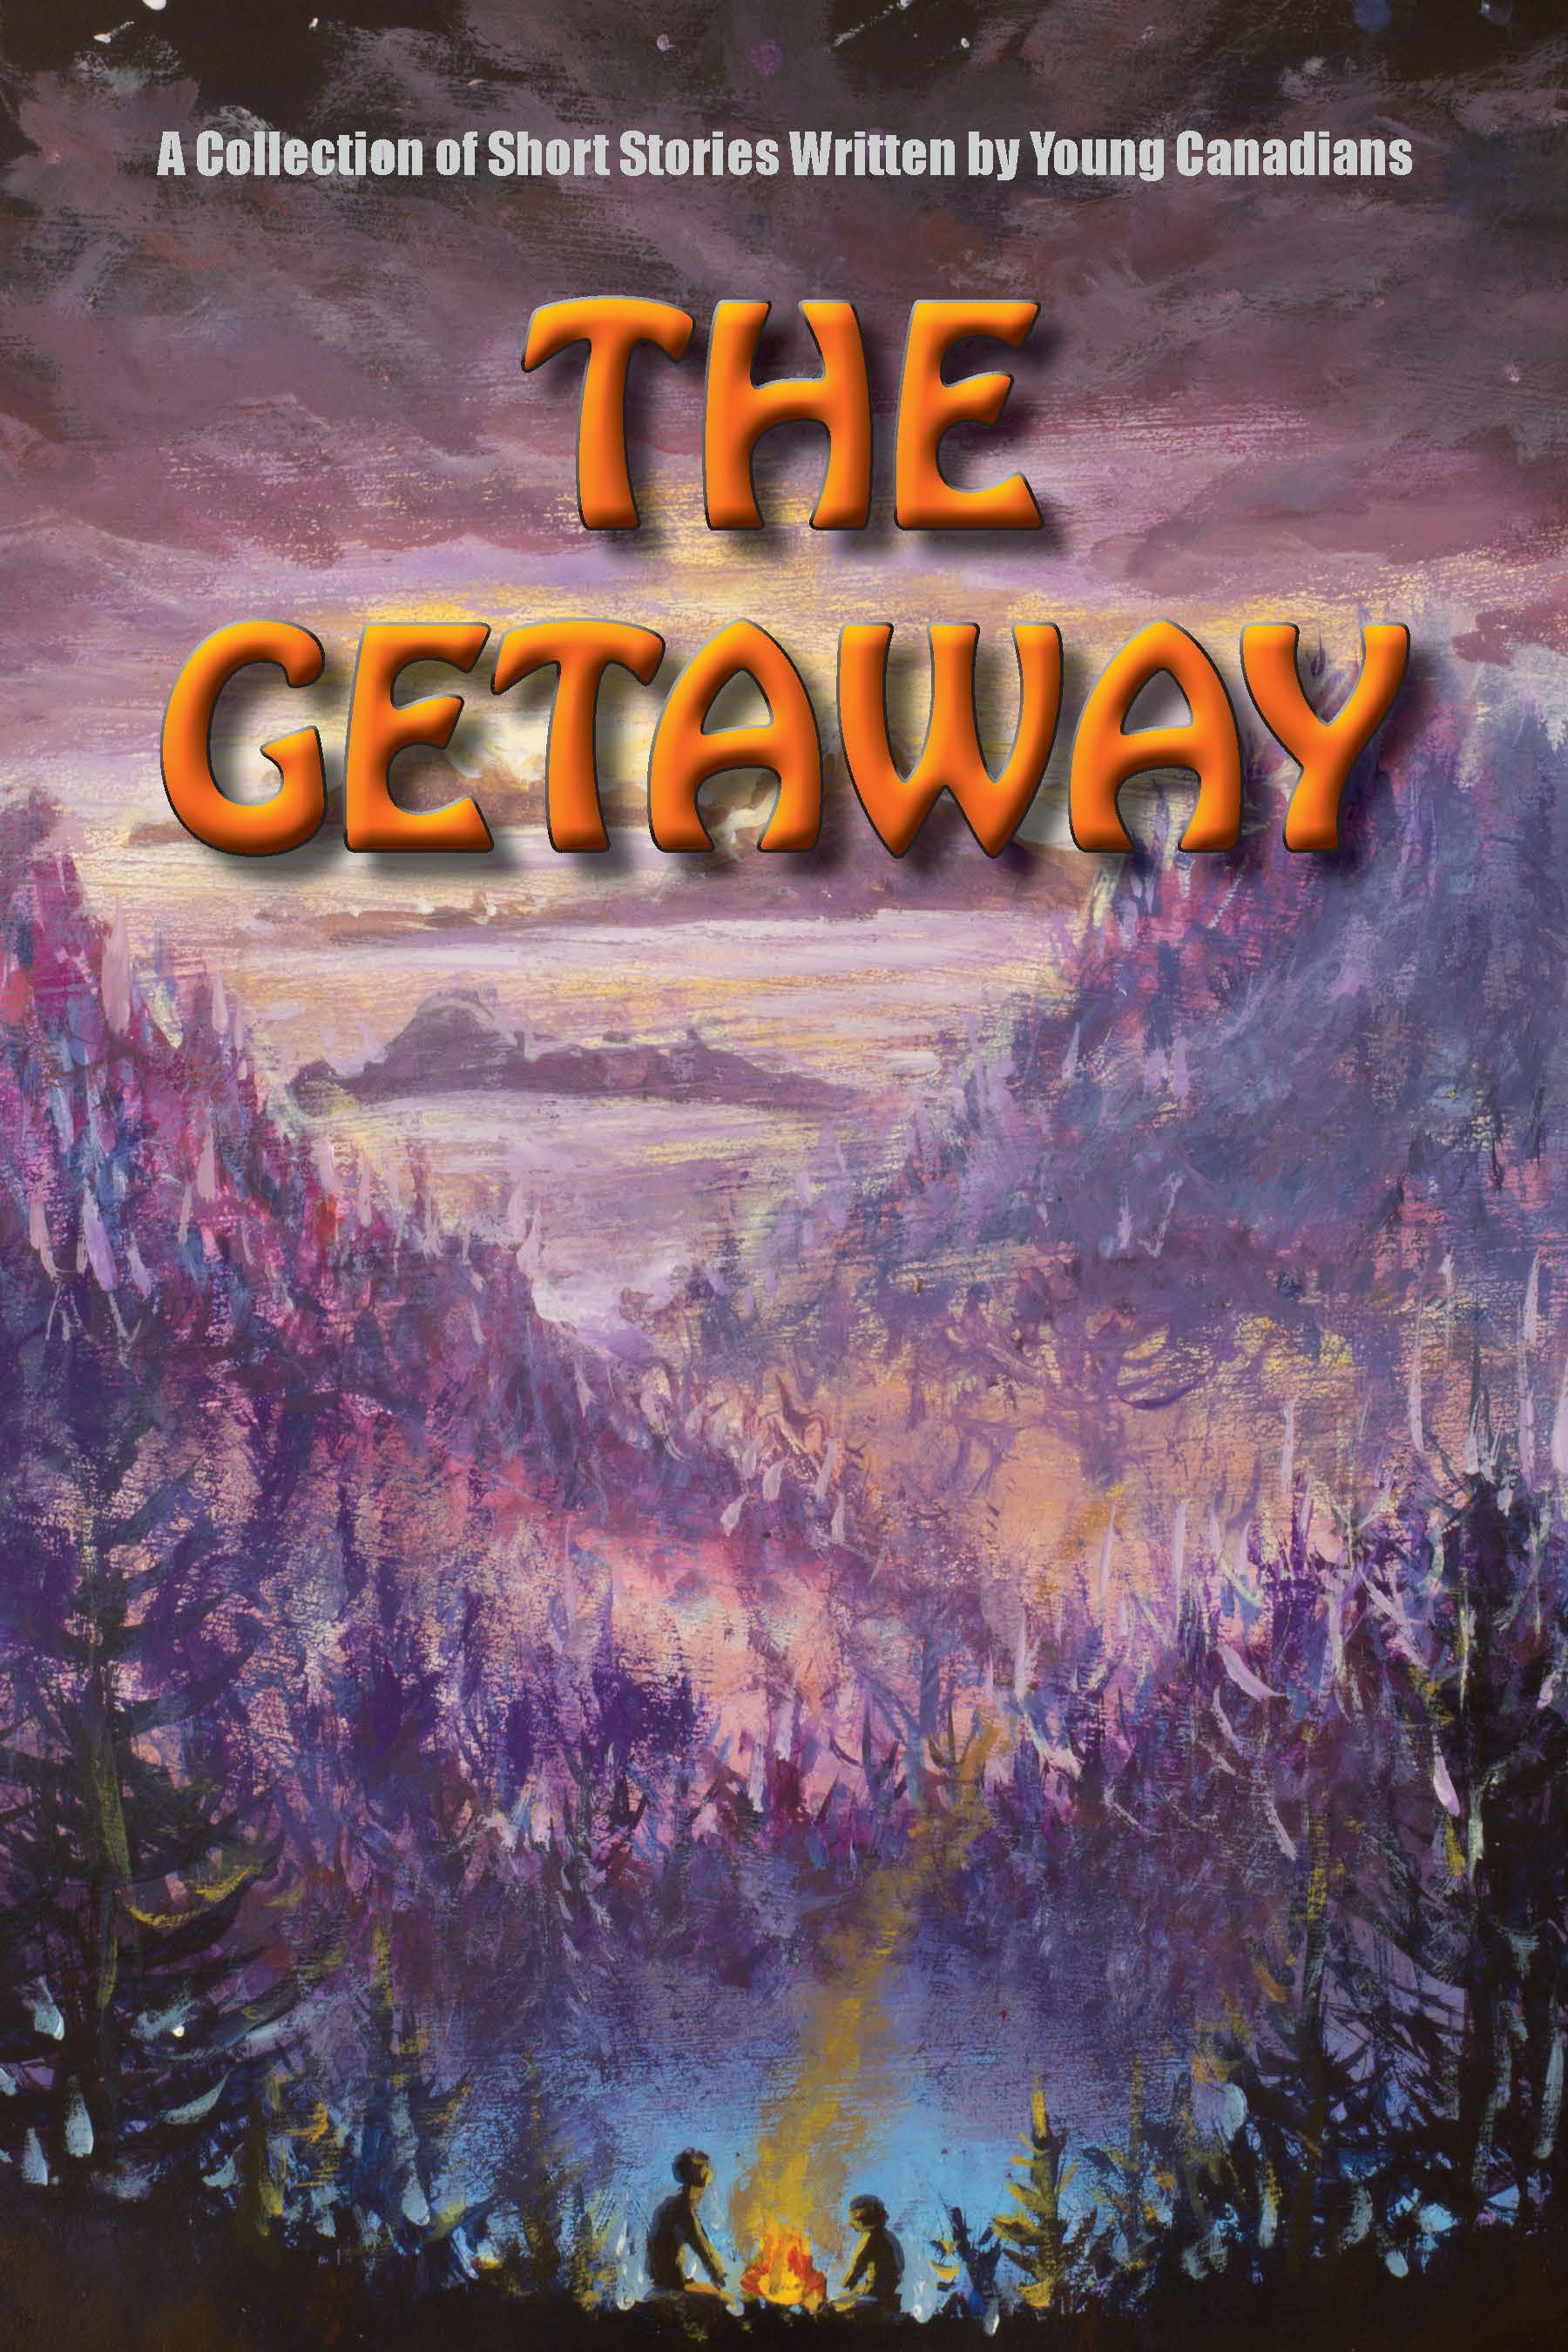 The Getaway 2019-2020 Grades Seven and Eight Student Story Collection